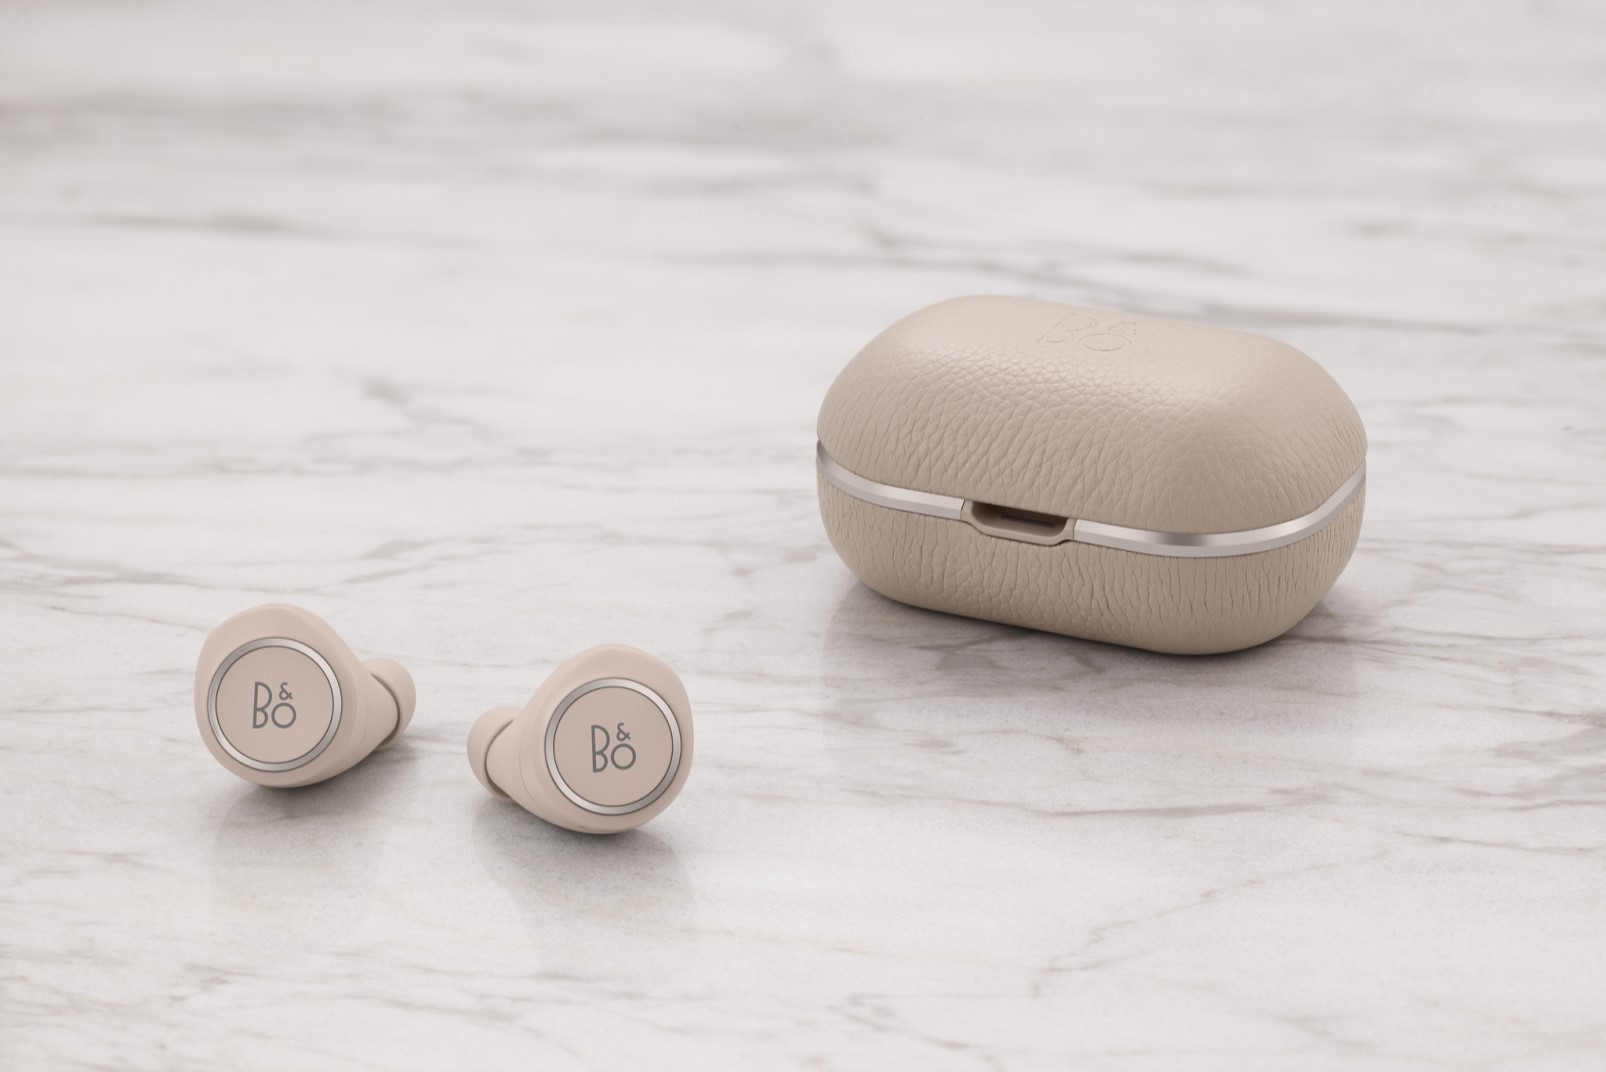 Bang and Olufsen Beoplay E8 2.0 Lime Stone